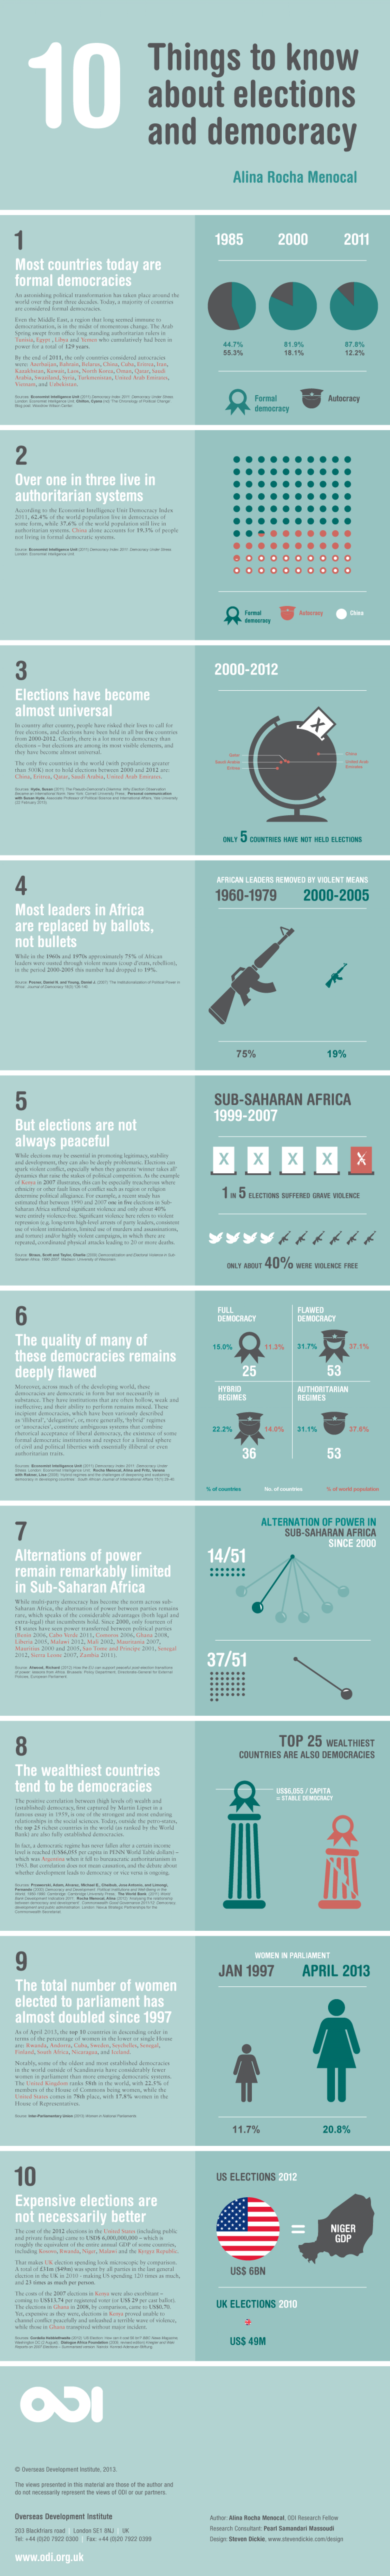 Ten things to know about elections and democracies Infographic